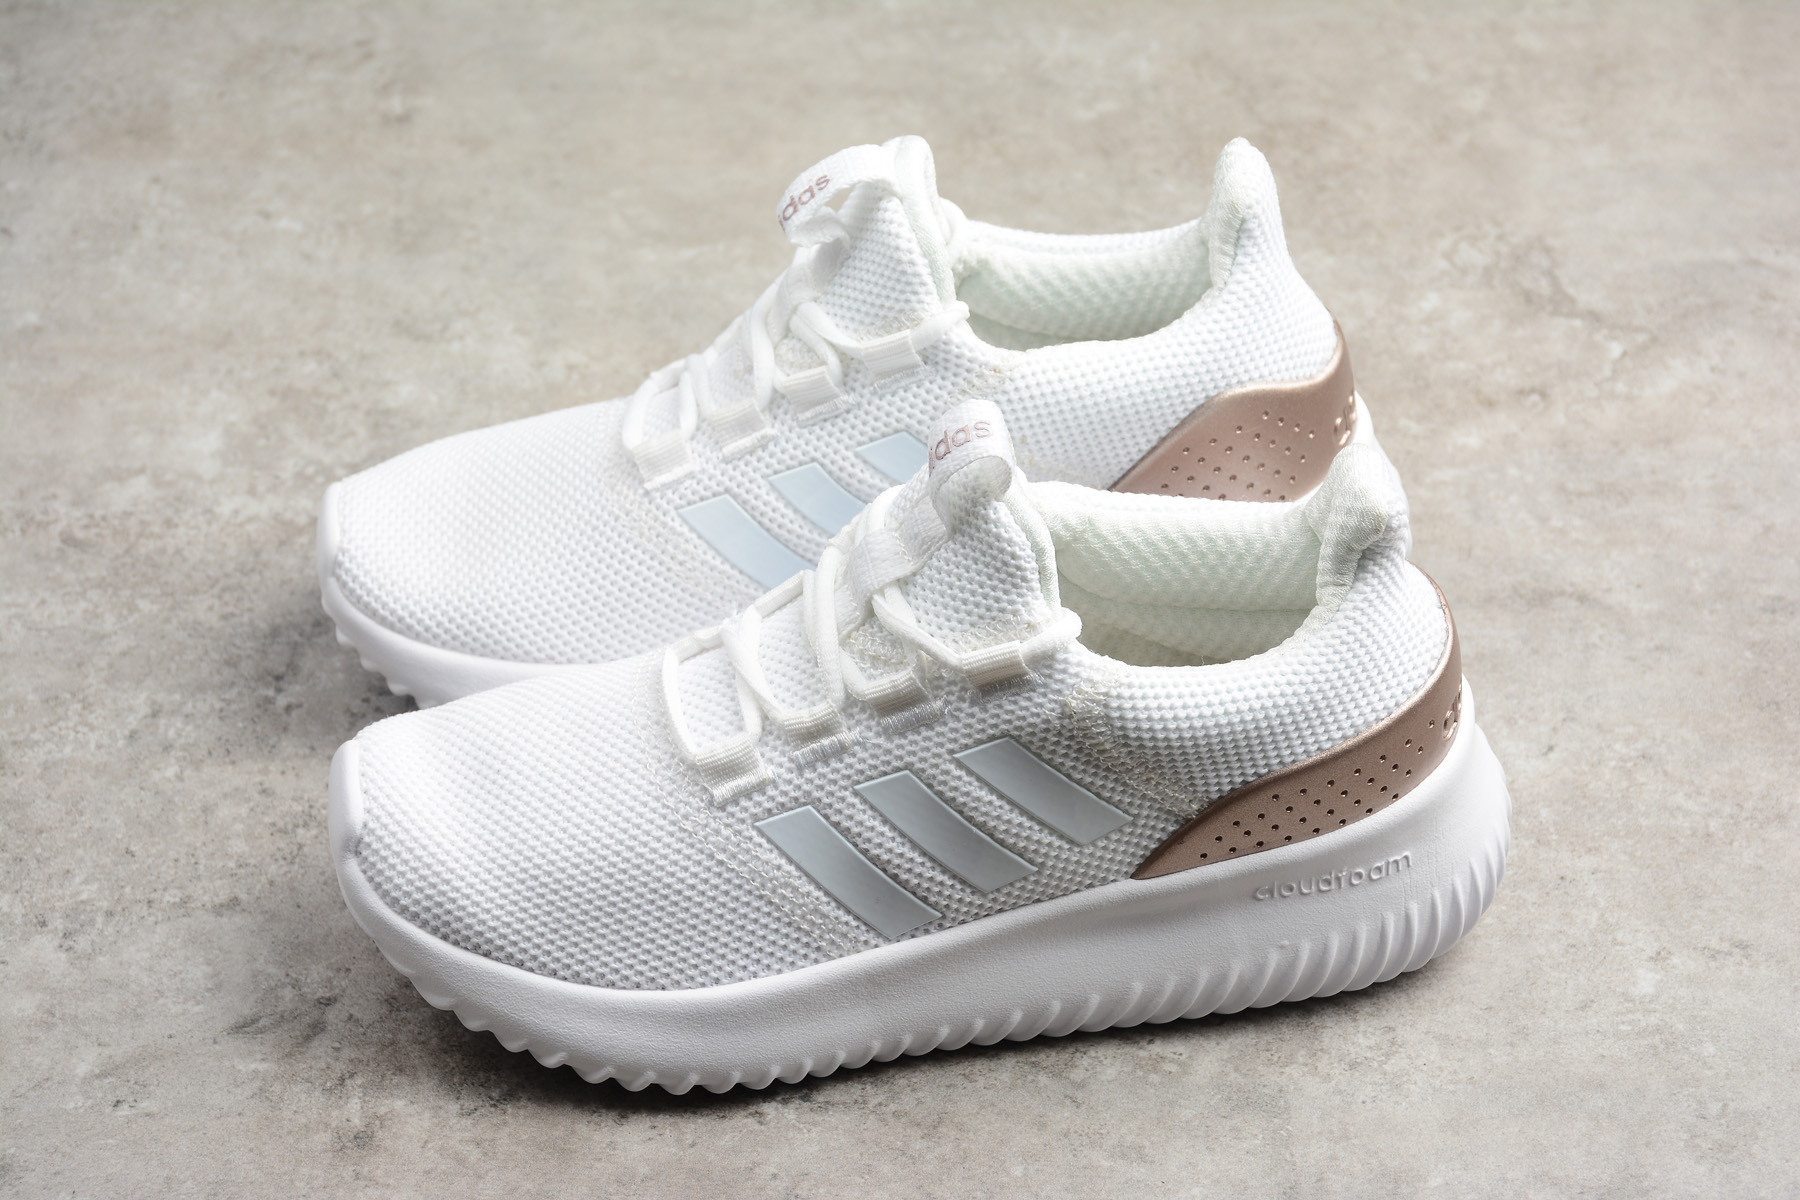 adidas Cloudfoam Ultimate Pure White Rose Gold Running Shoes DB1791